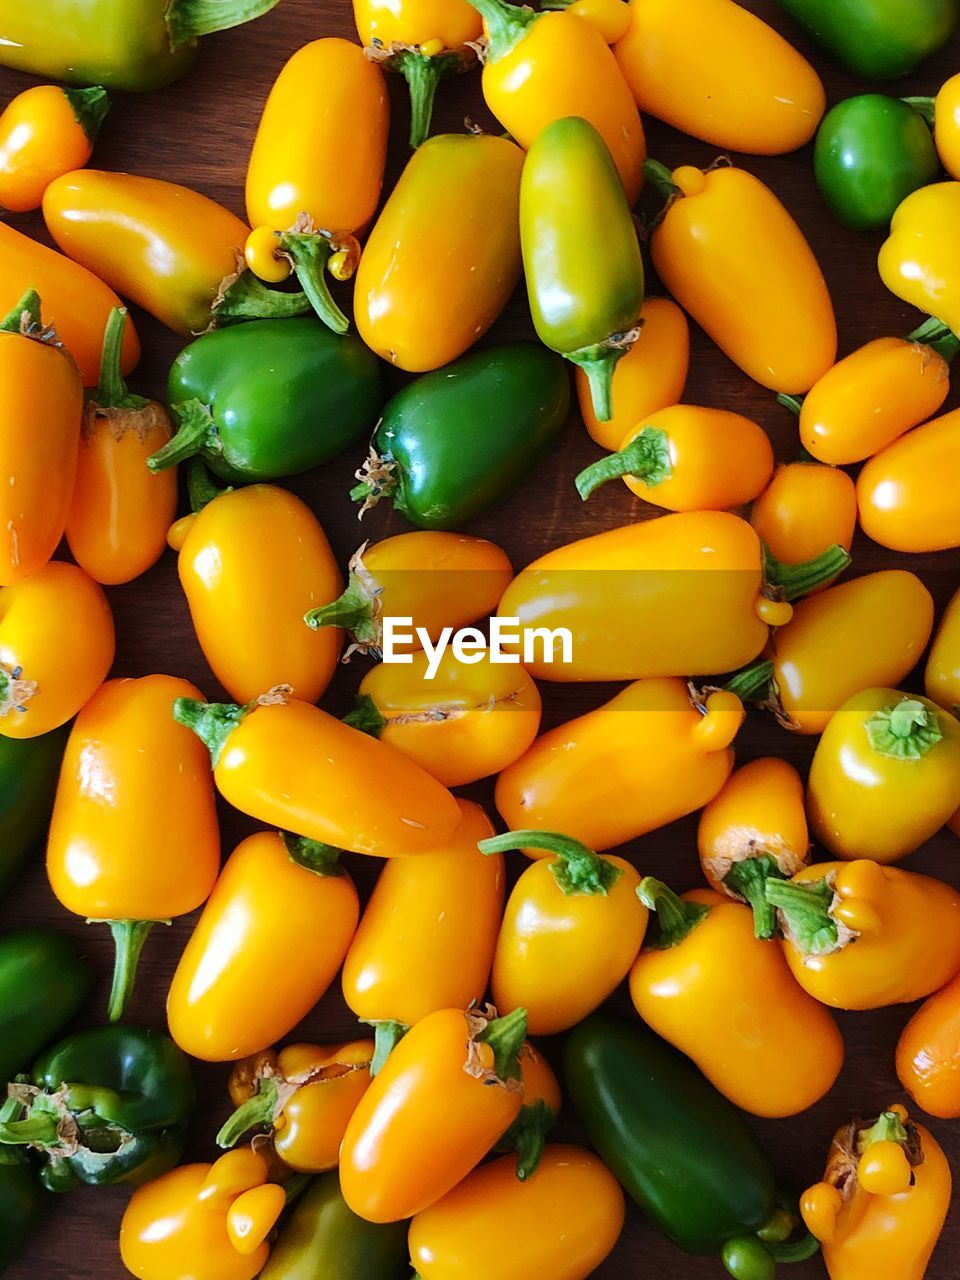 FULL FRAME SHOT OF BELL PEPPERS